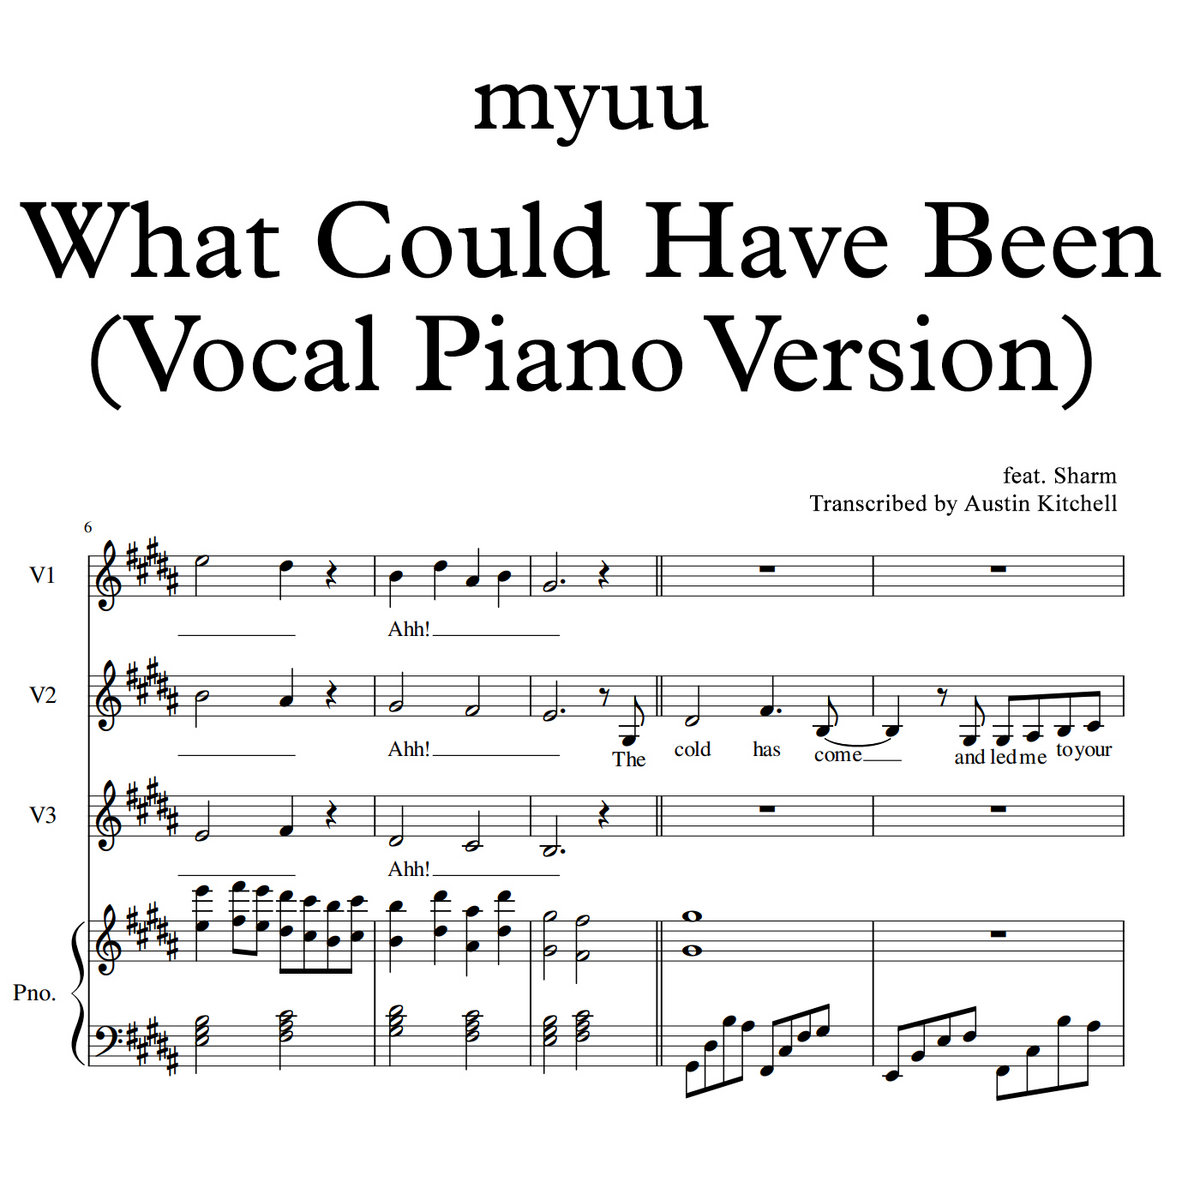 What Could Have Been (Vocal Piano Version)